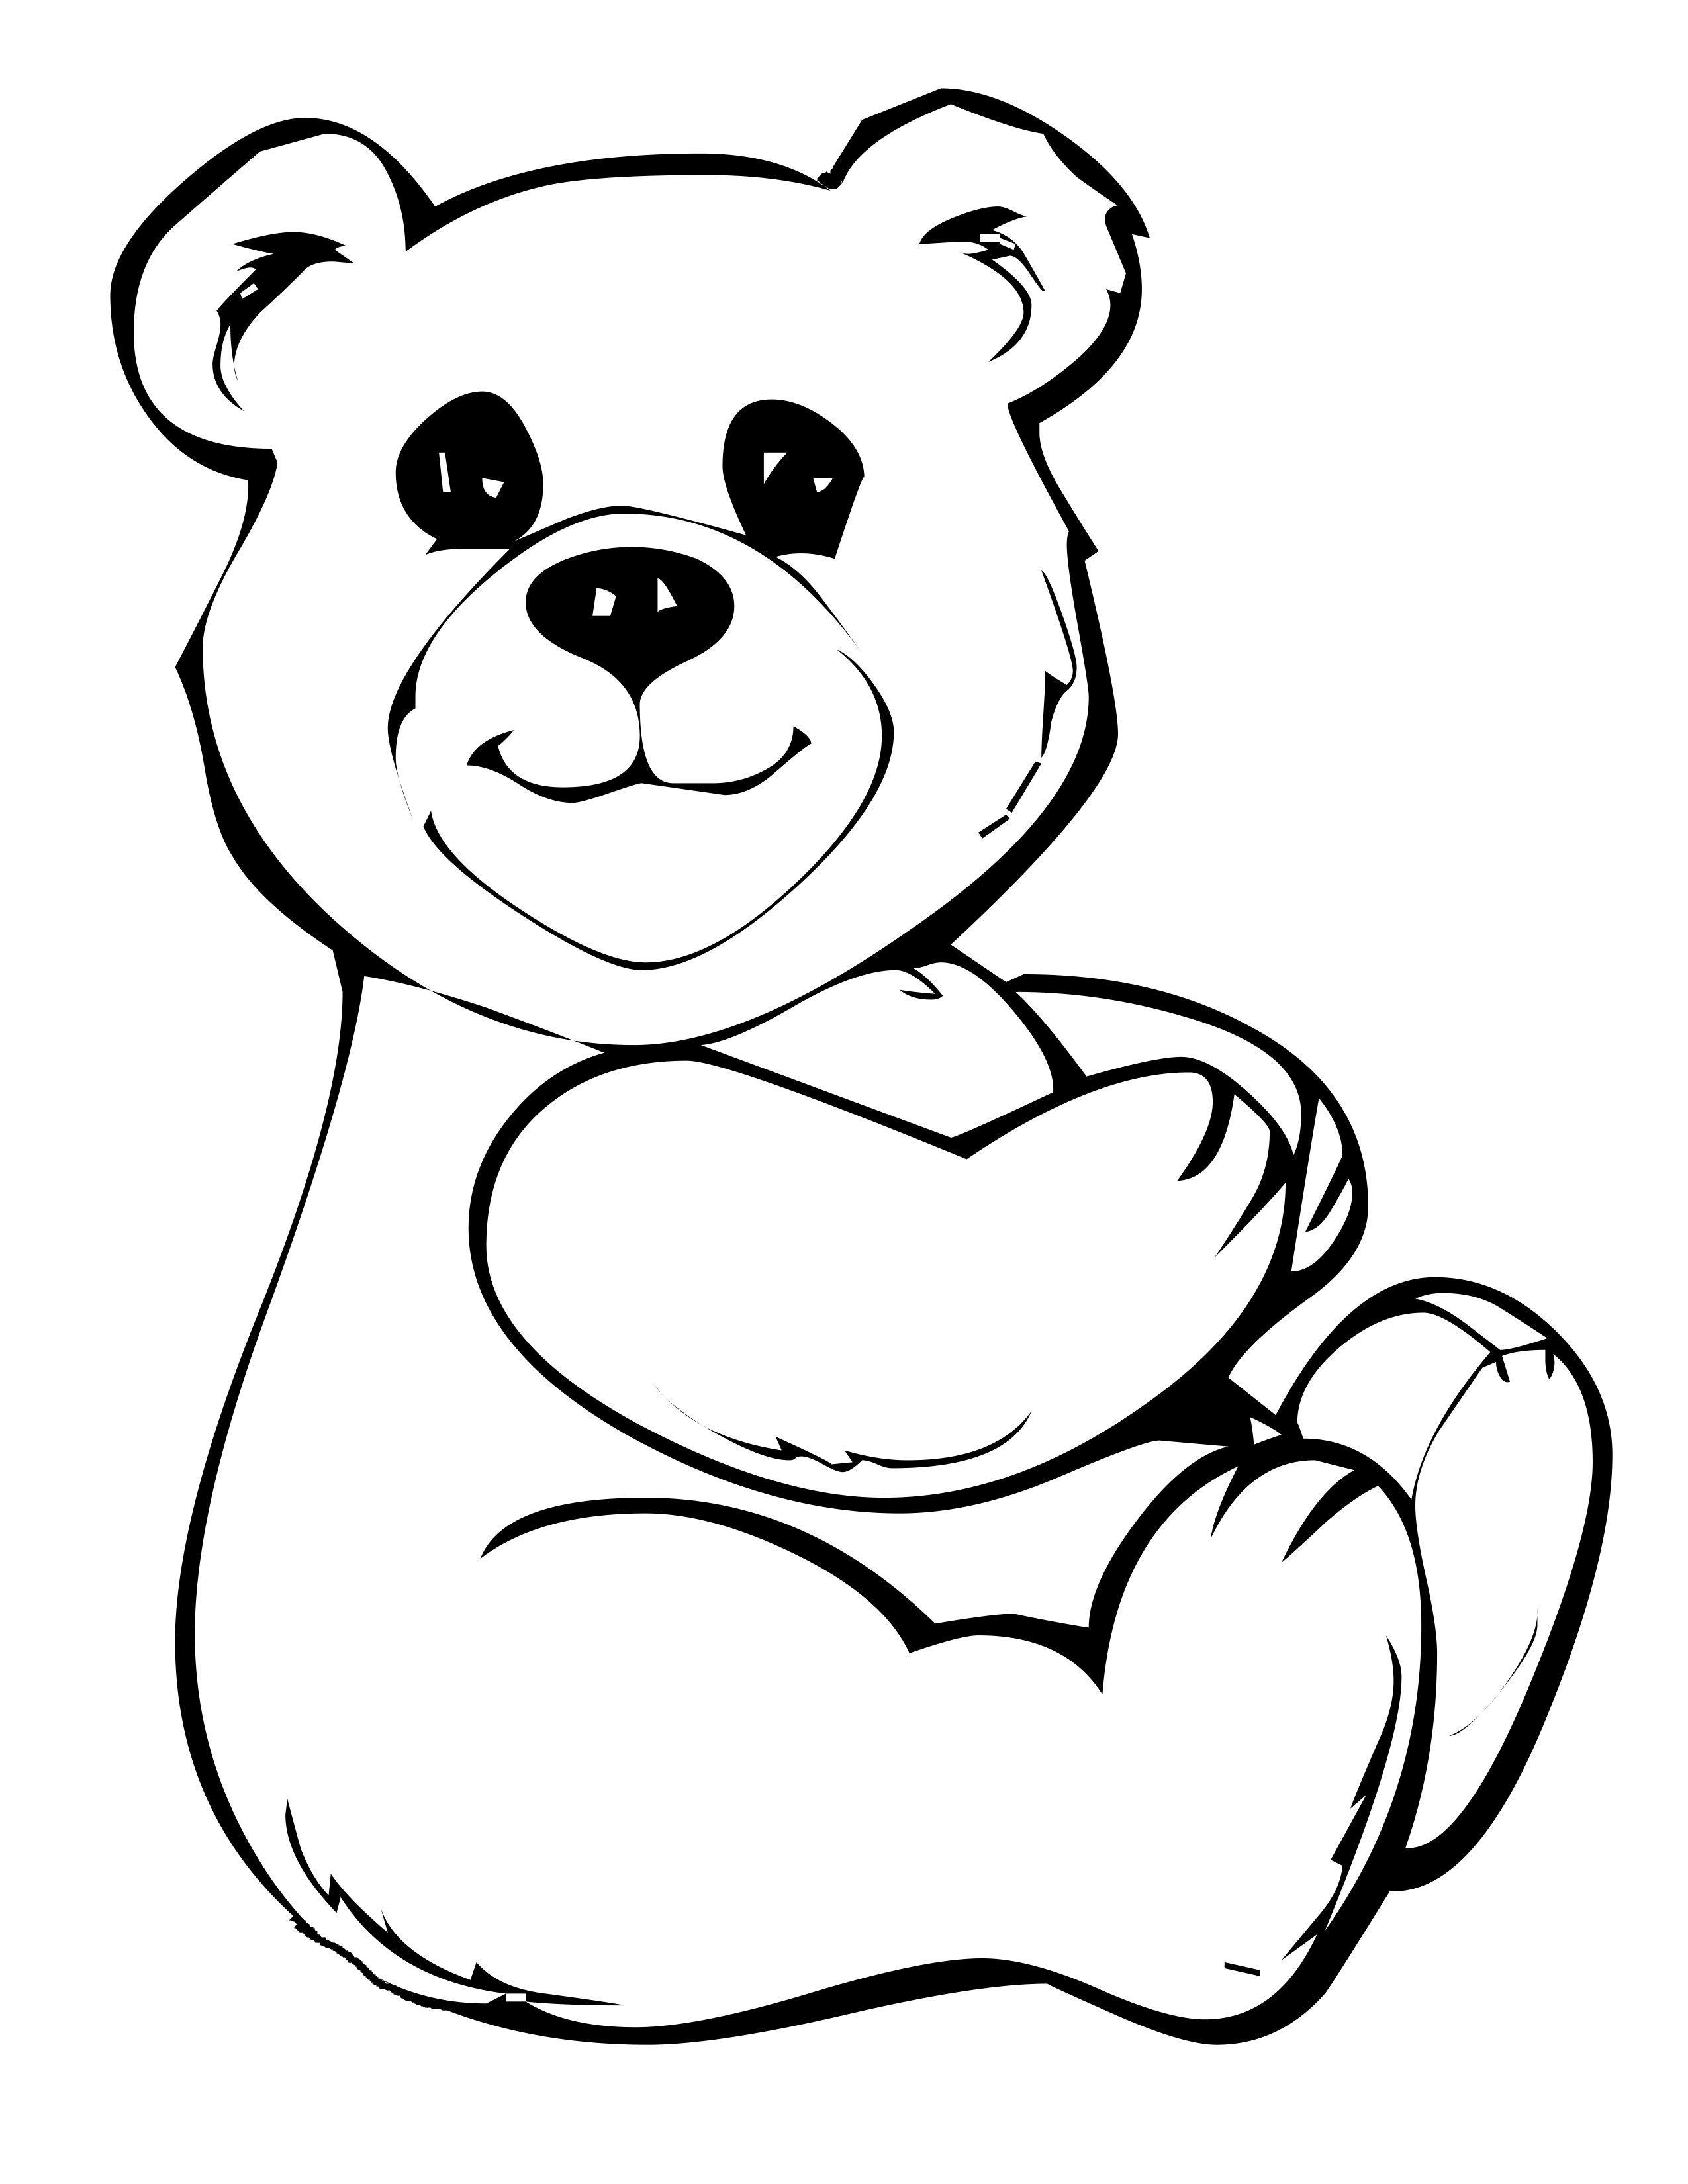 Small Cute Teddy Bear Sitting Relaxed Coloring Pages For Kids Fr5 Printable Teddy Bears Coloring Pages For Kids